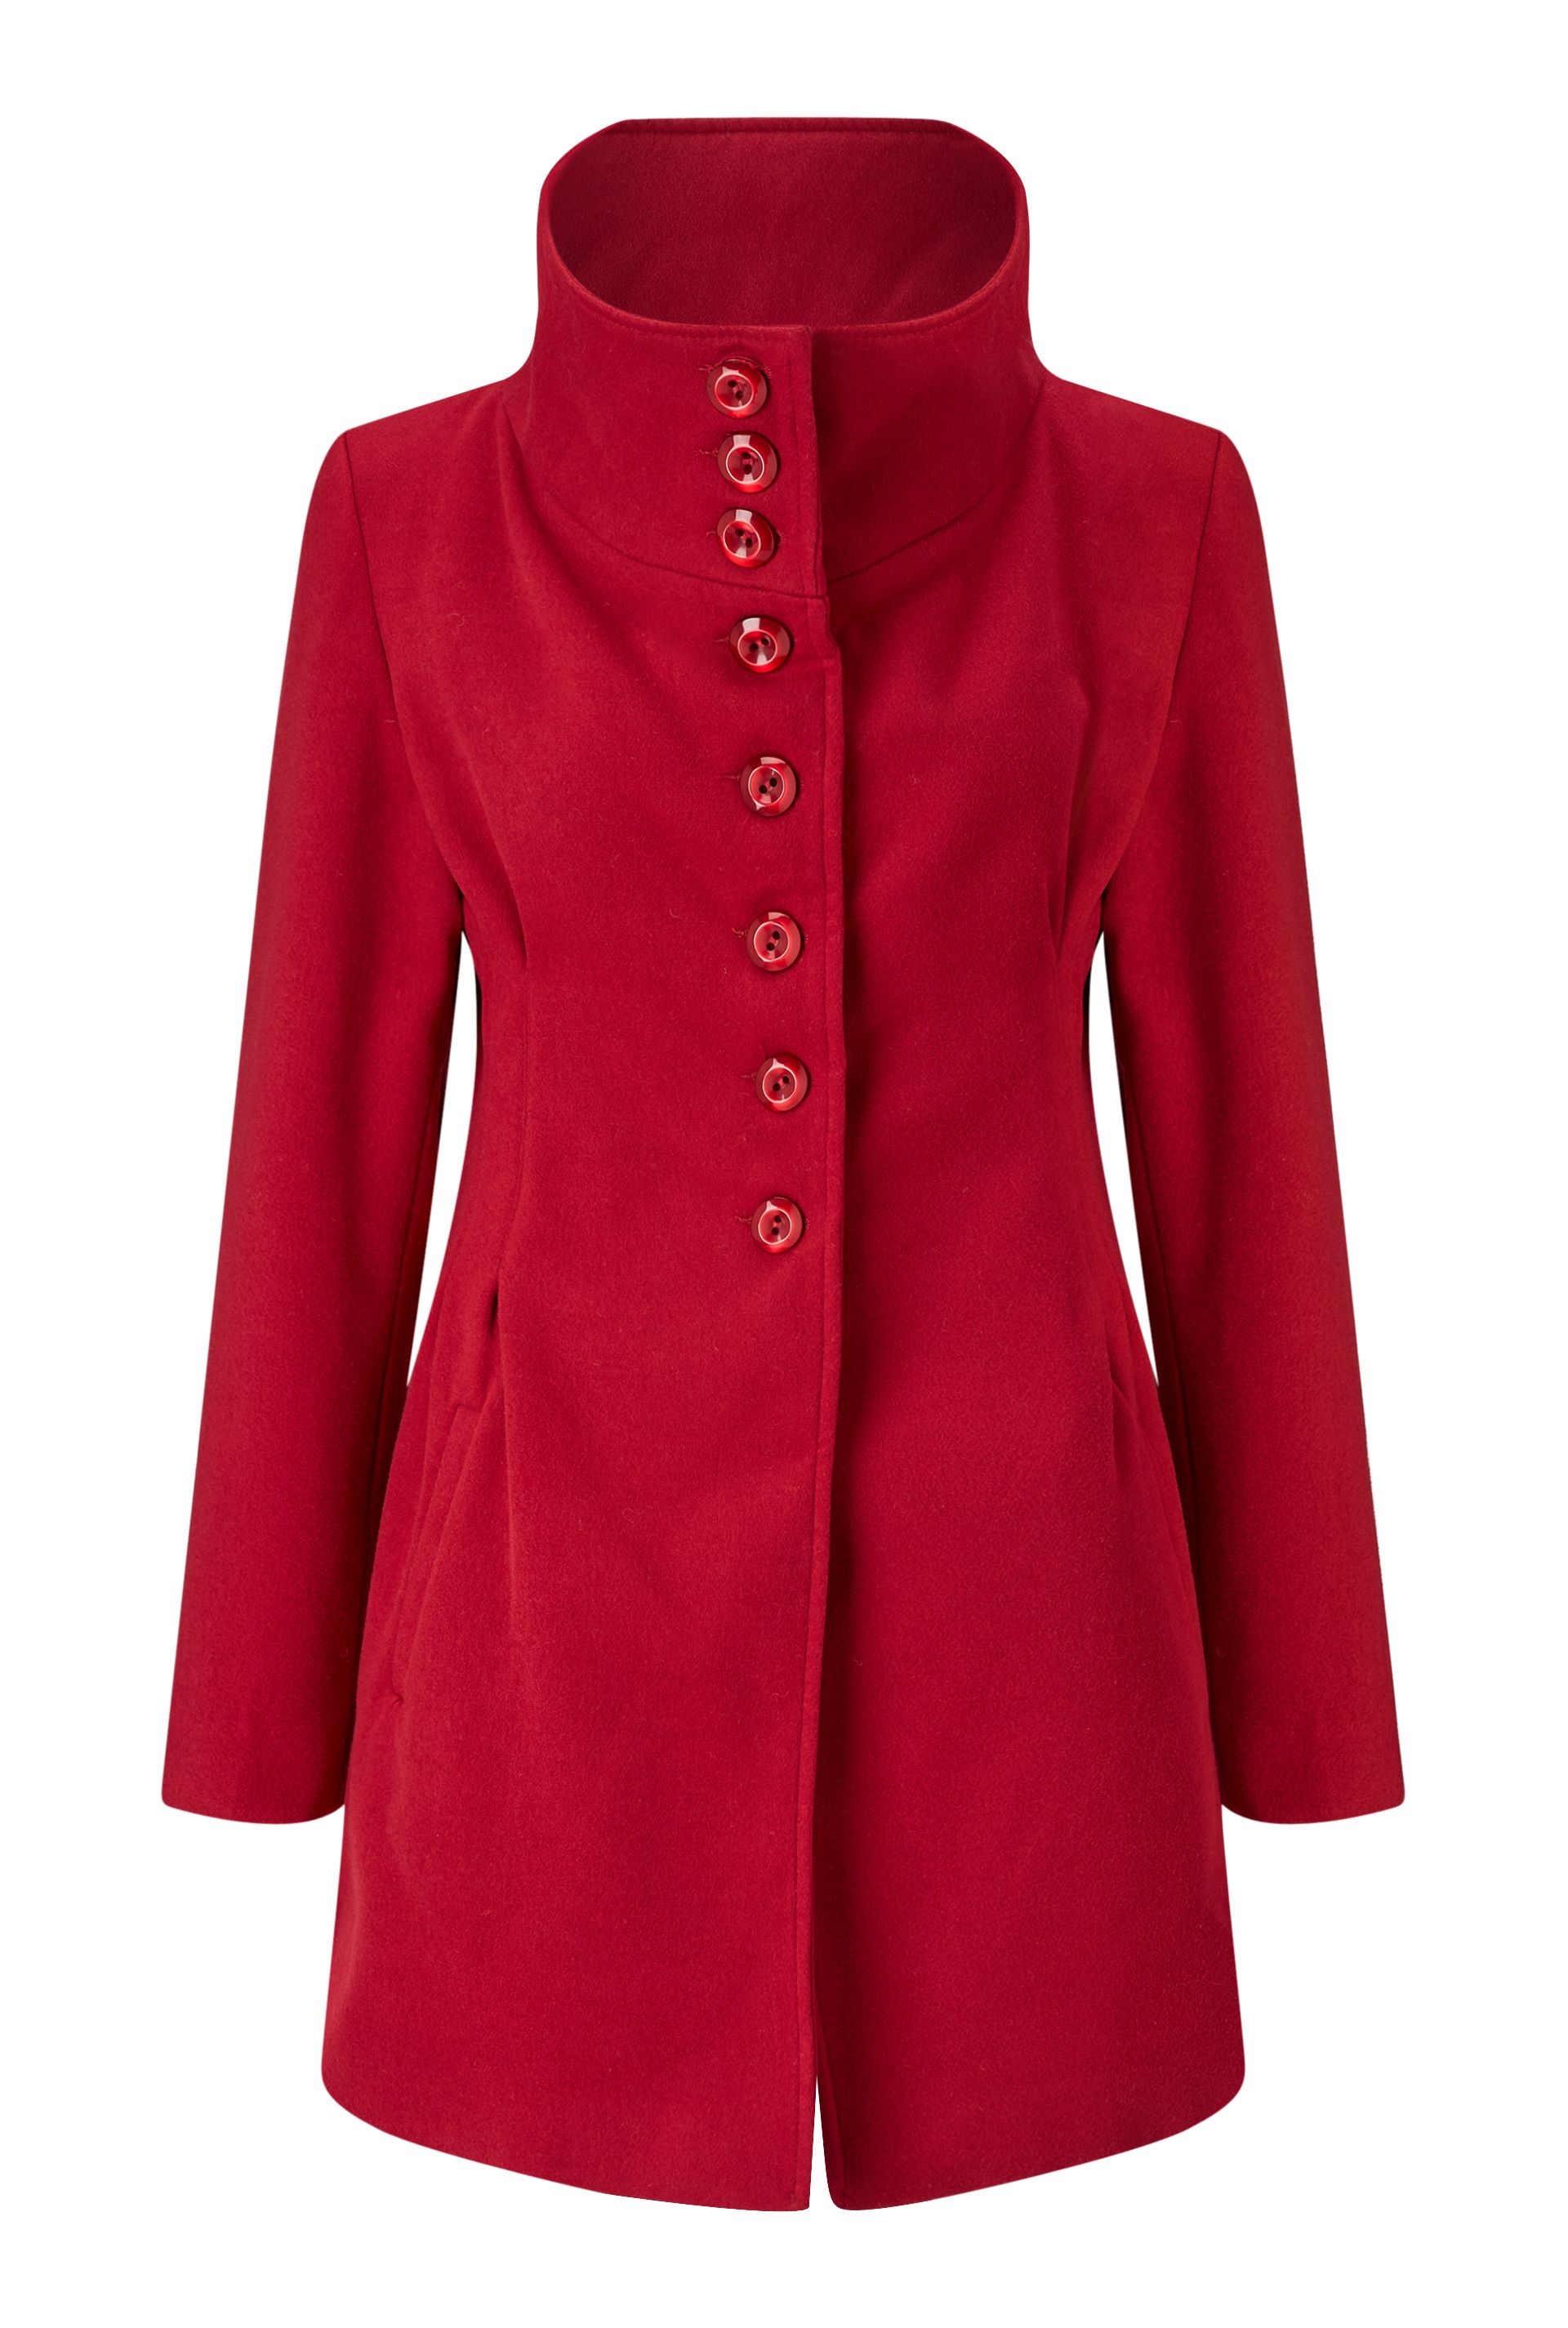 James Lakeland High Collar Coat, Red